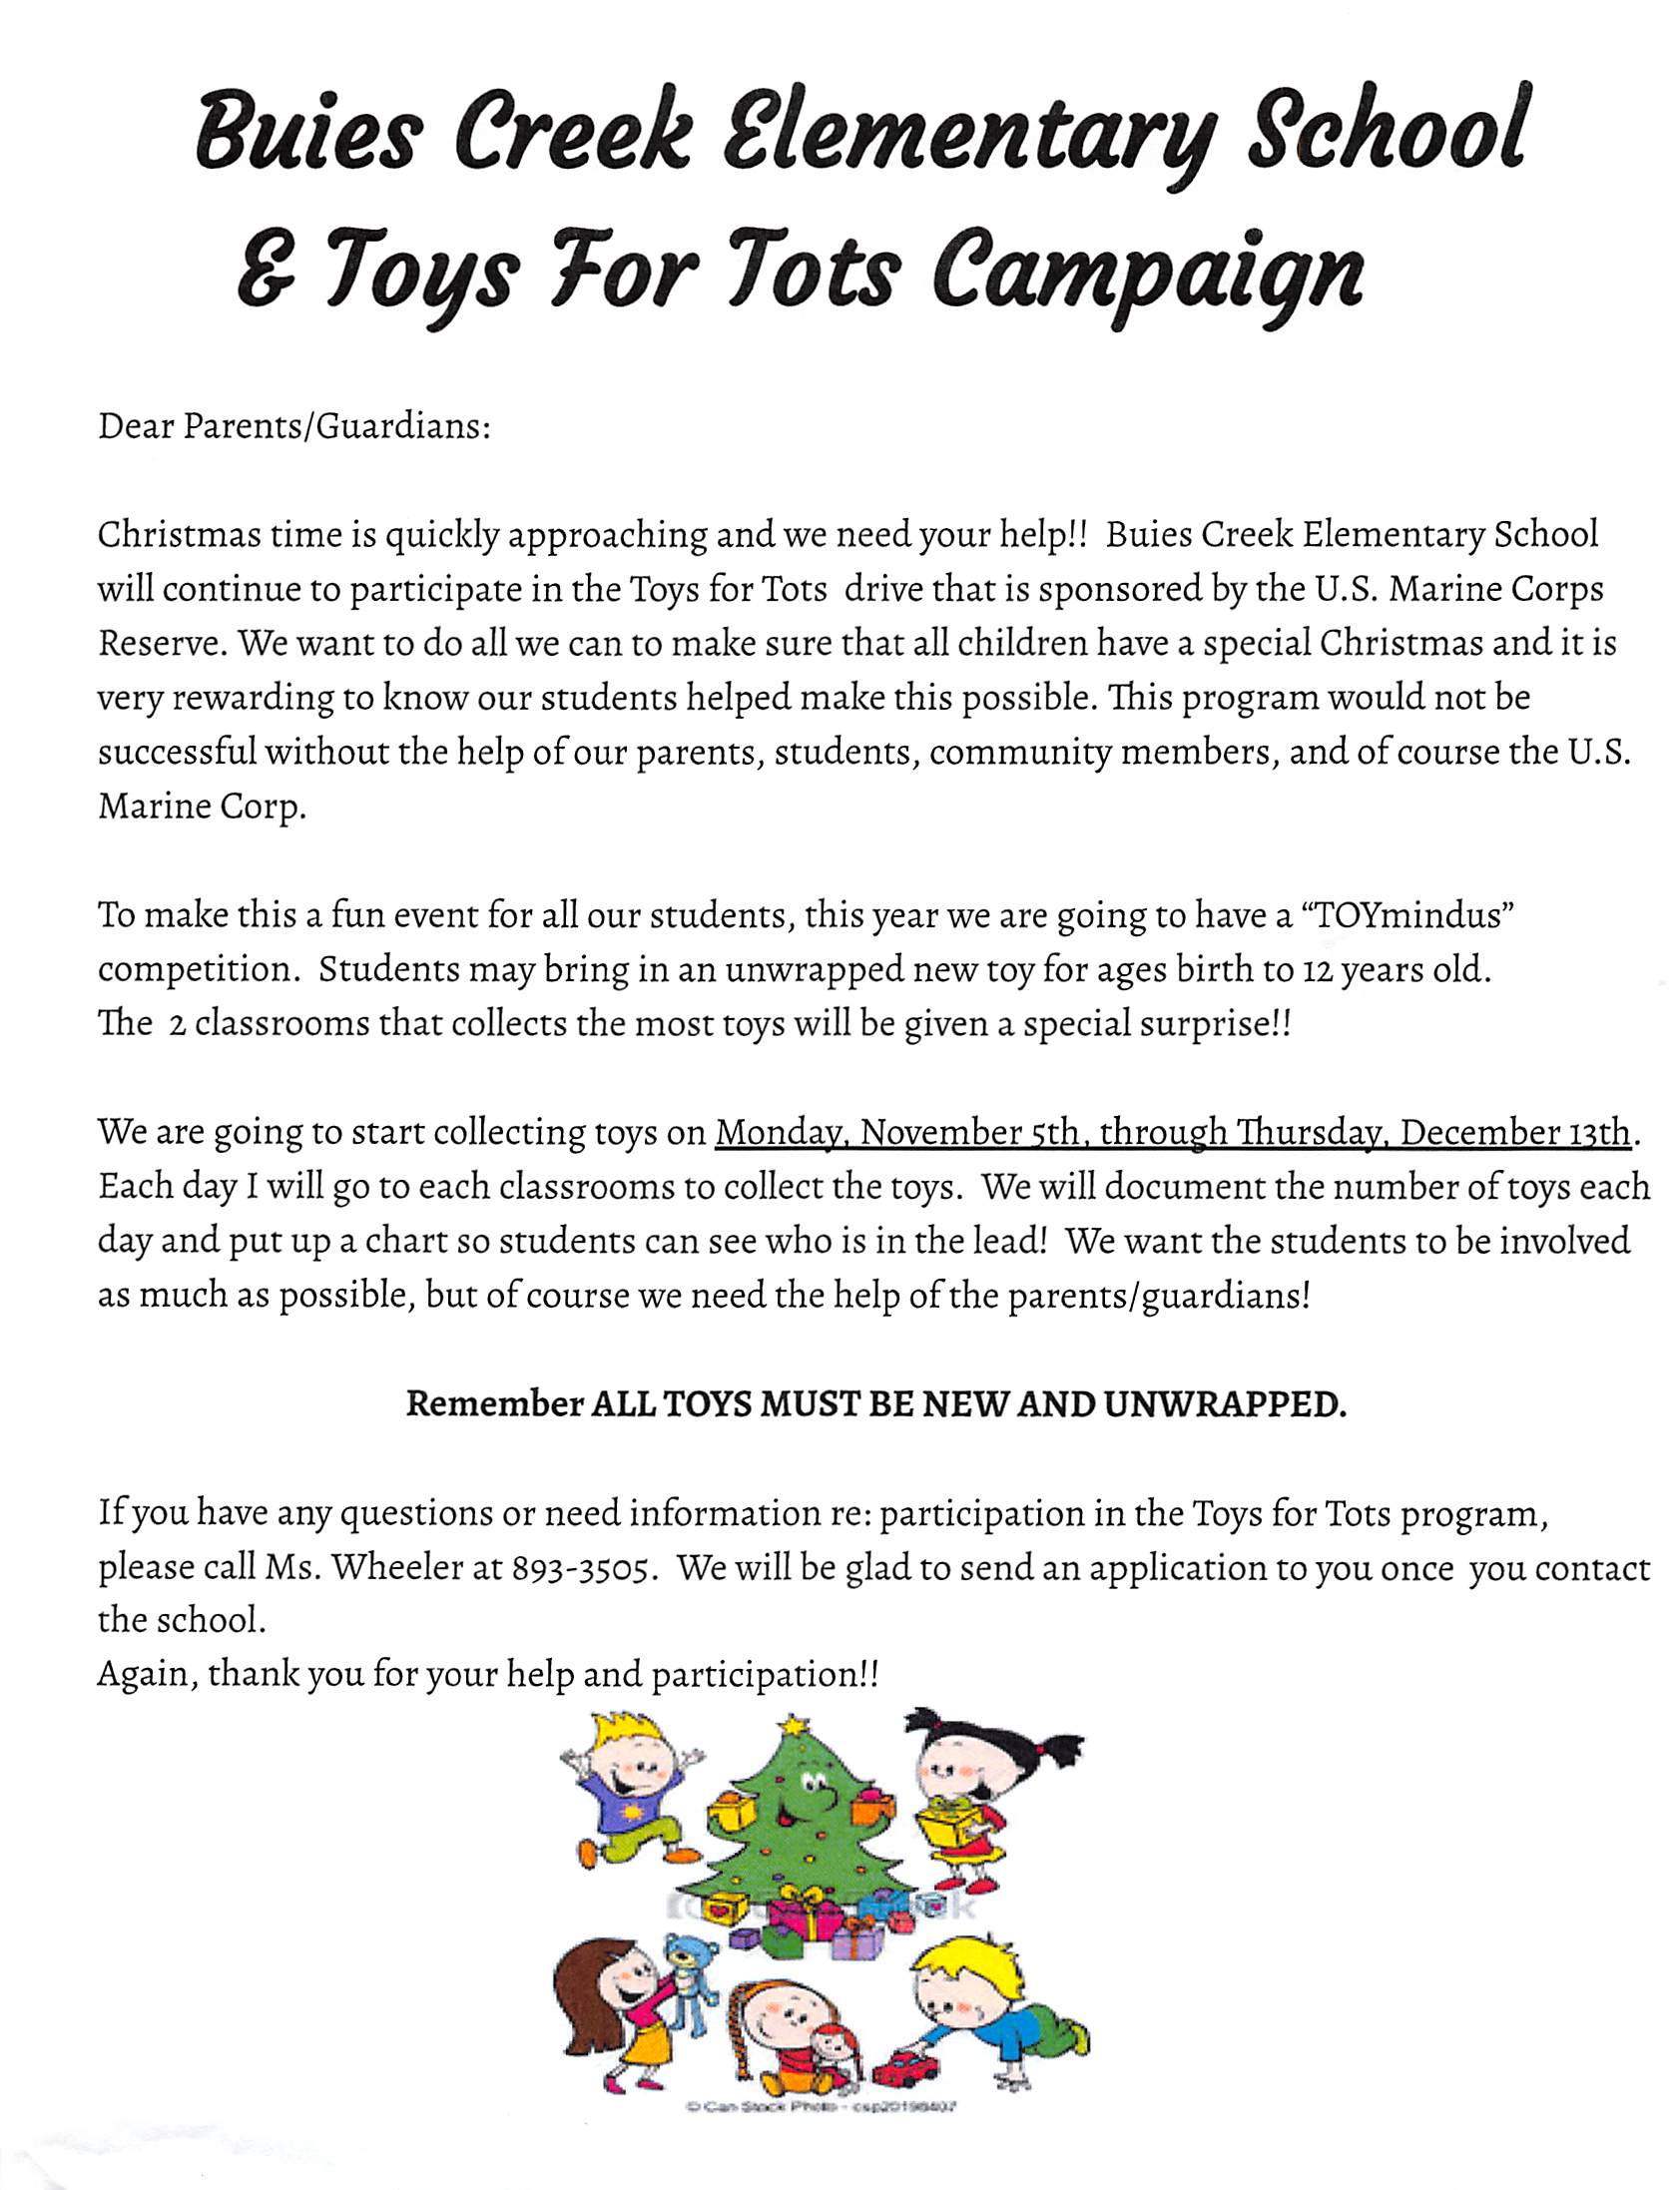 Announcement Email Sample Toys For Tots : Buies creek elementary homepage